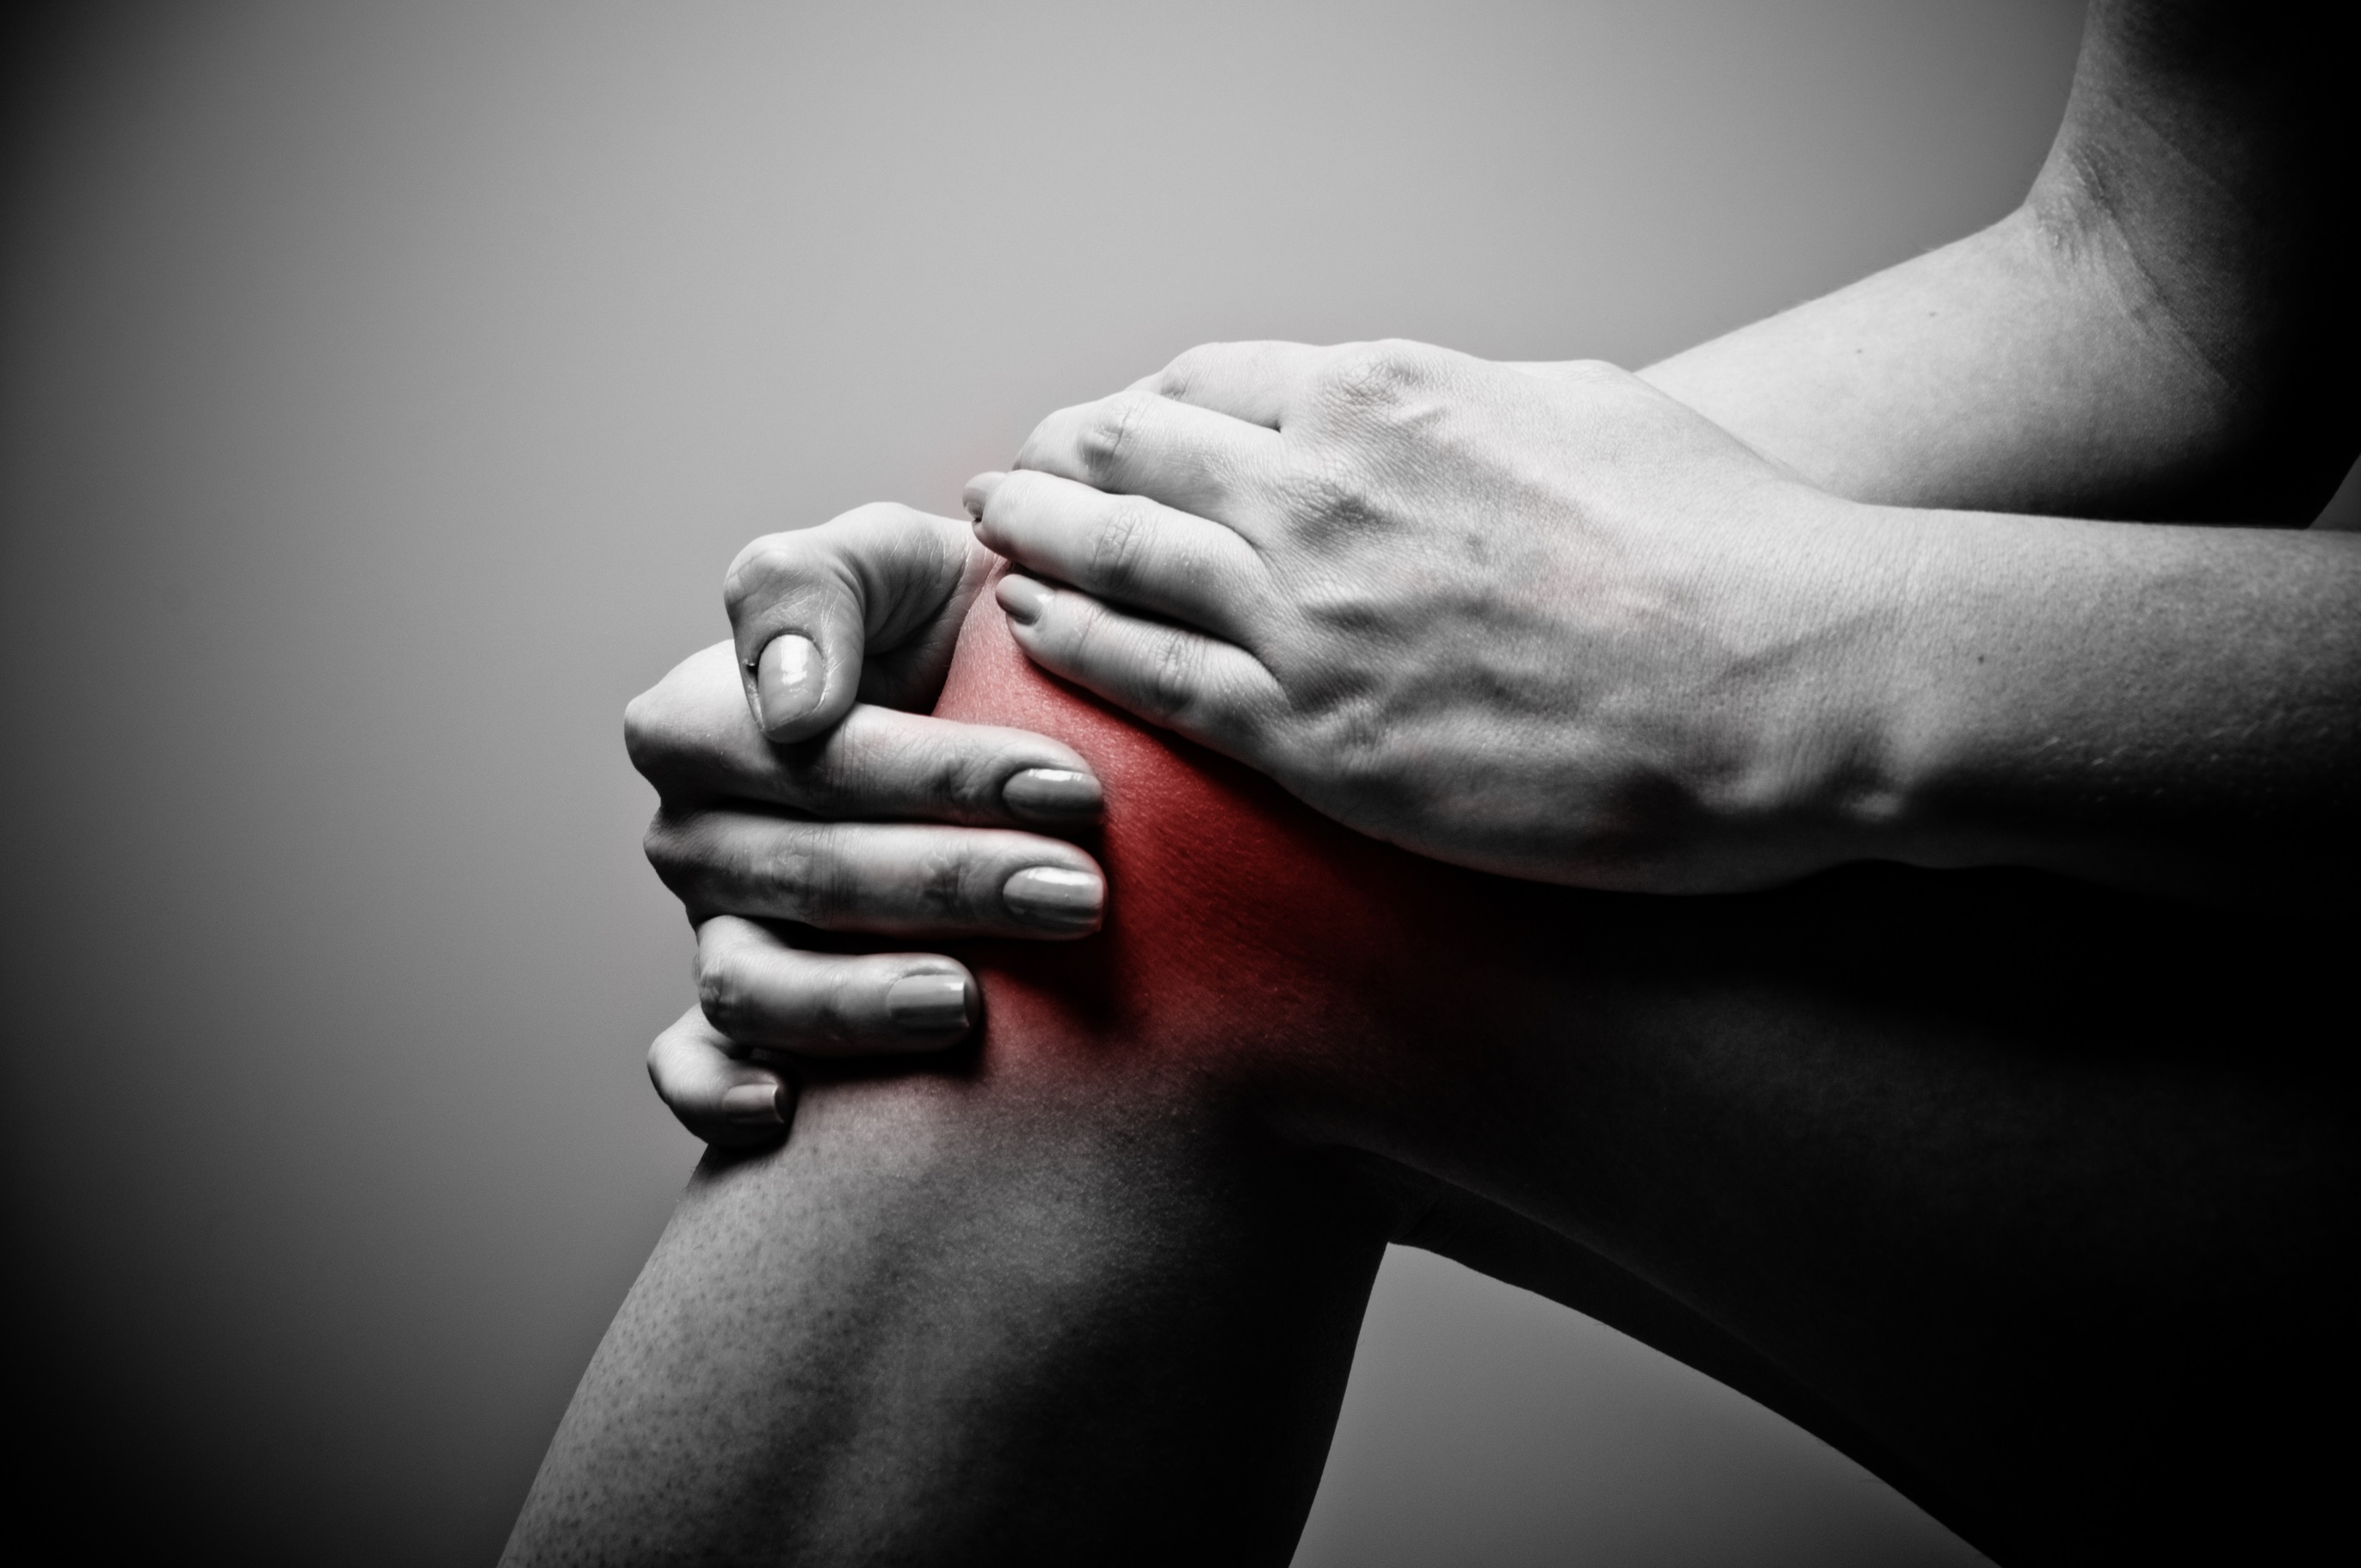 Knee pain affects millions of Americans each year. The key to lowering the risk is through strong hips and core.